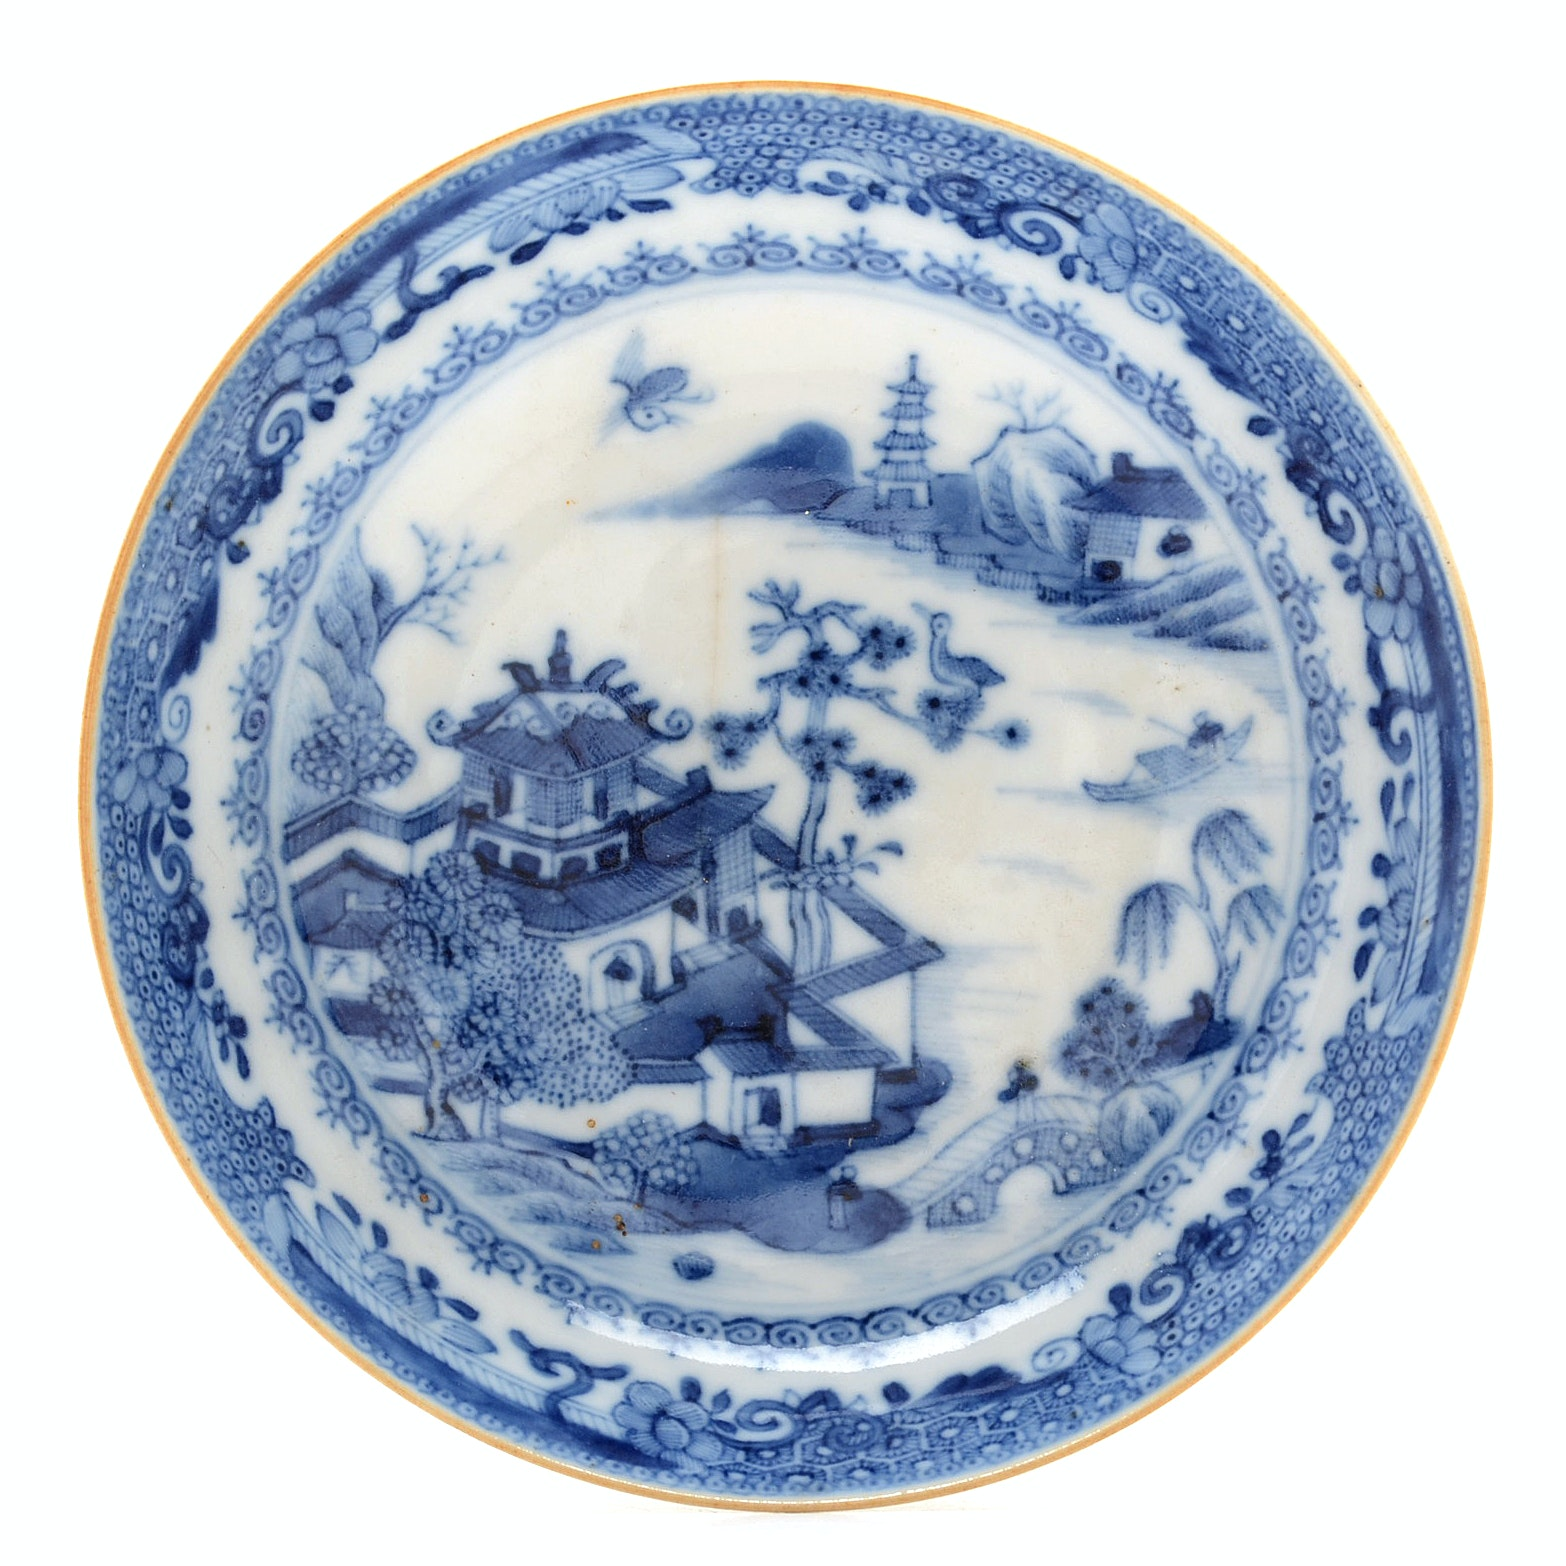 Qing Dynasty Blue and White Porcelain Saucer